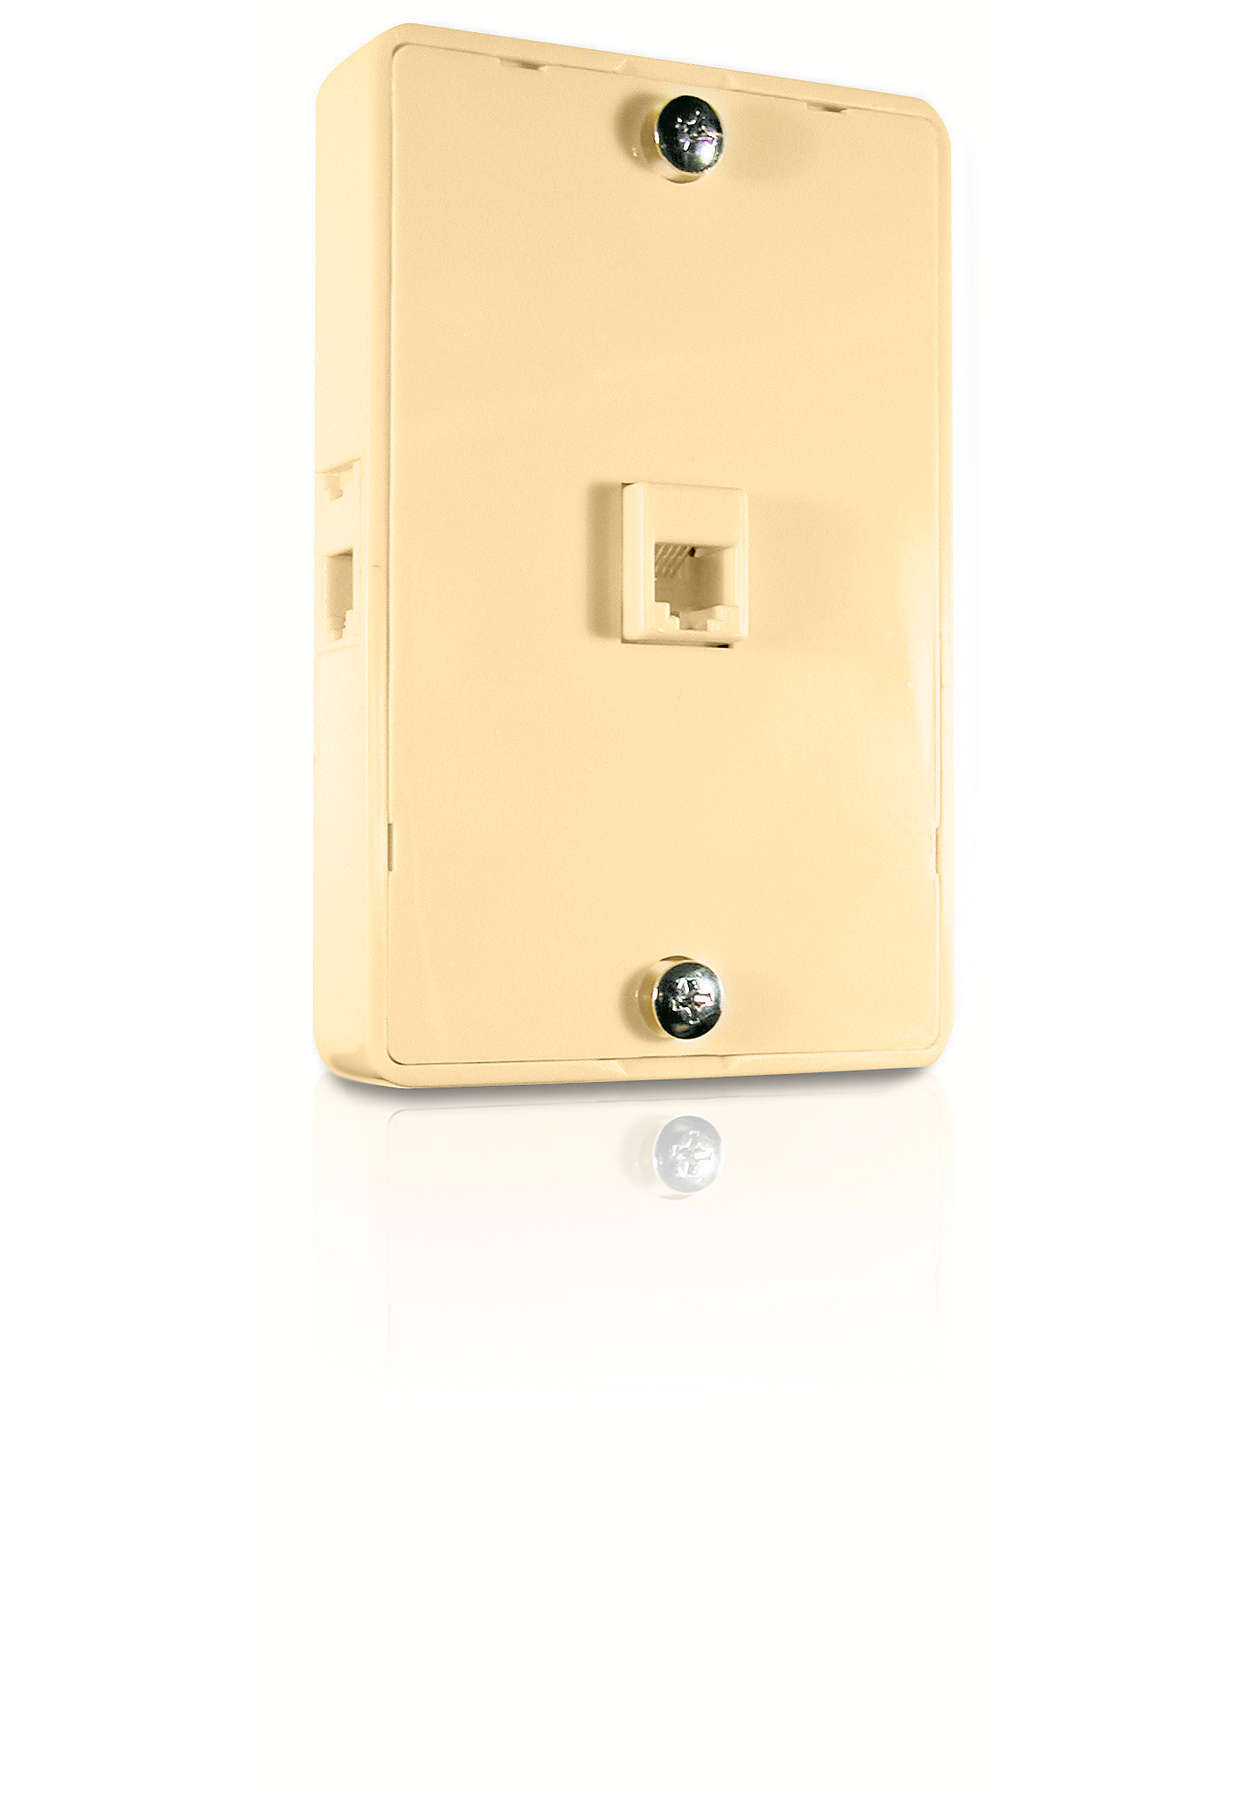 Convert one phone jack into three separate jacks.